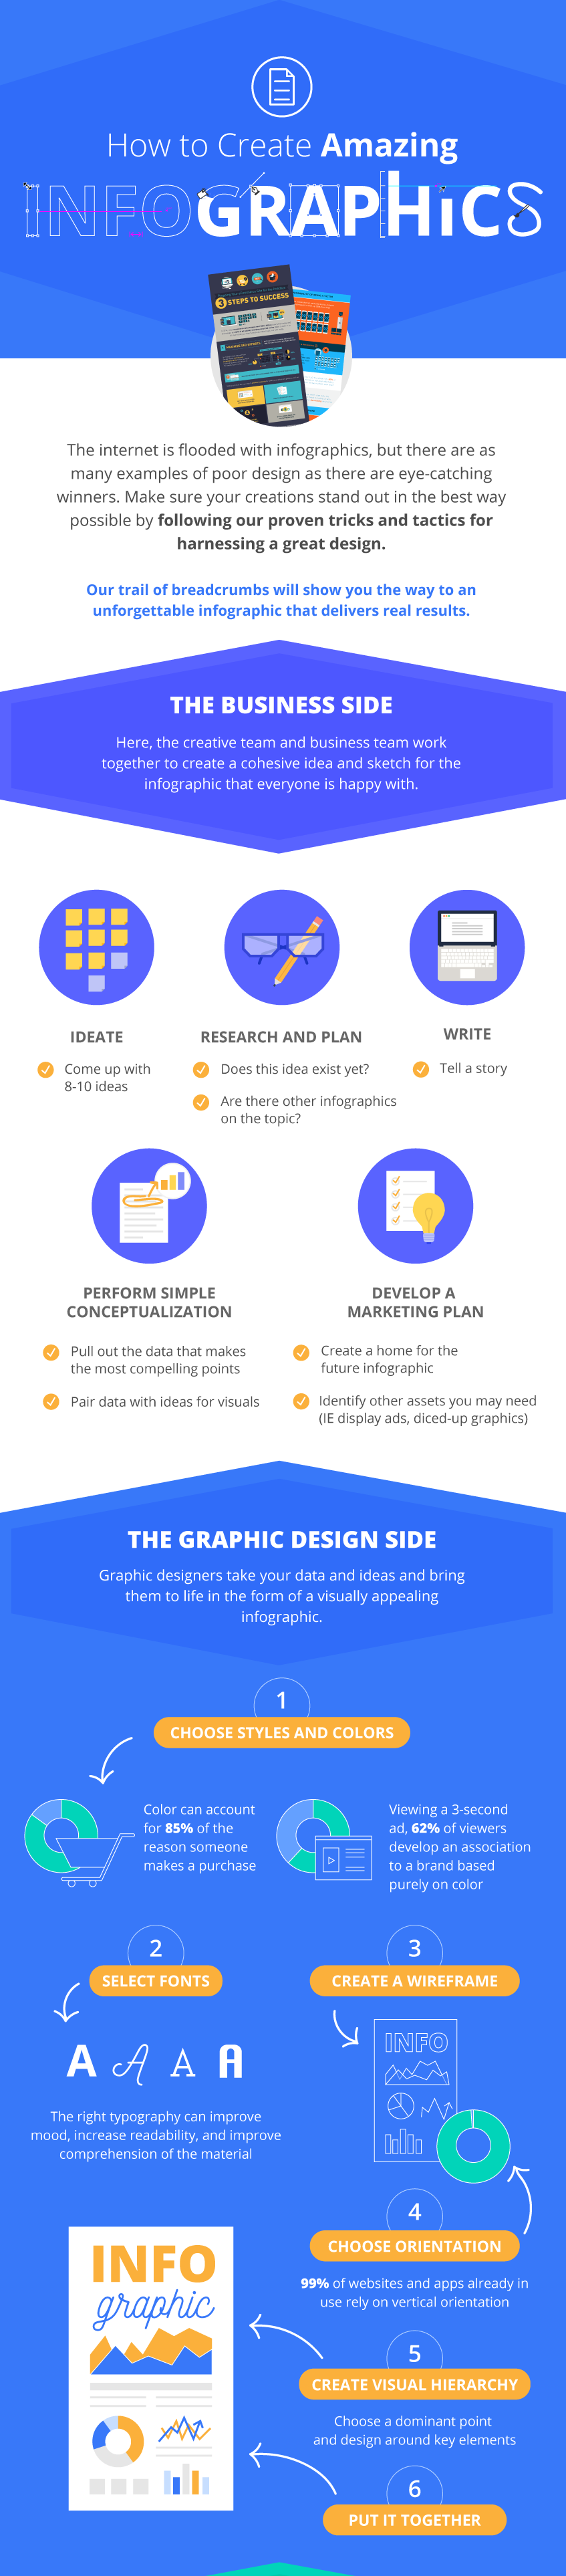 A sample of a good topic for infographics